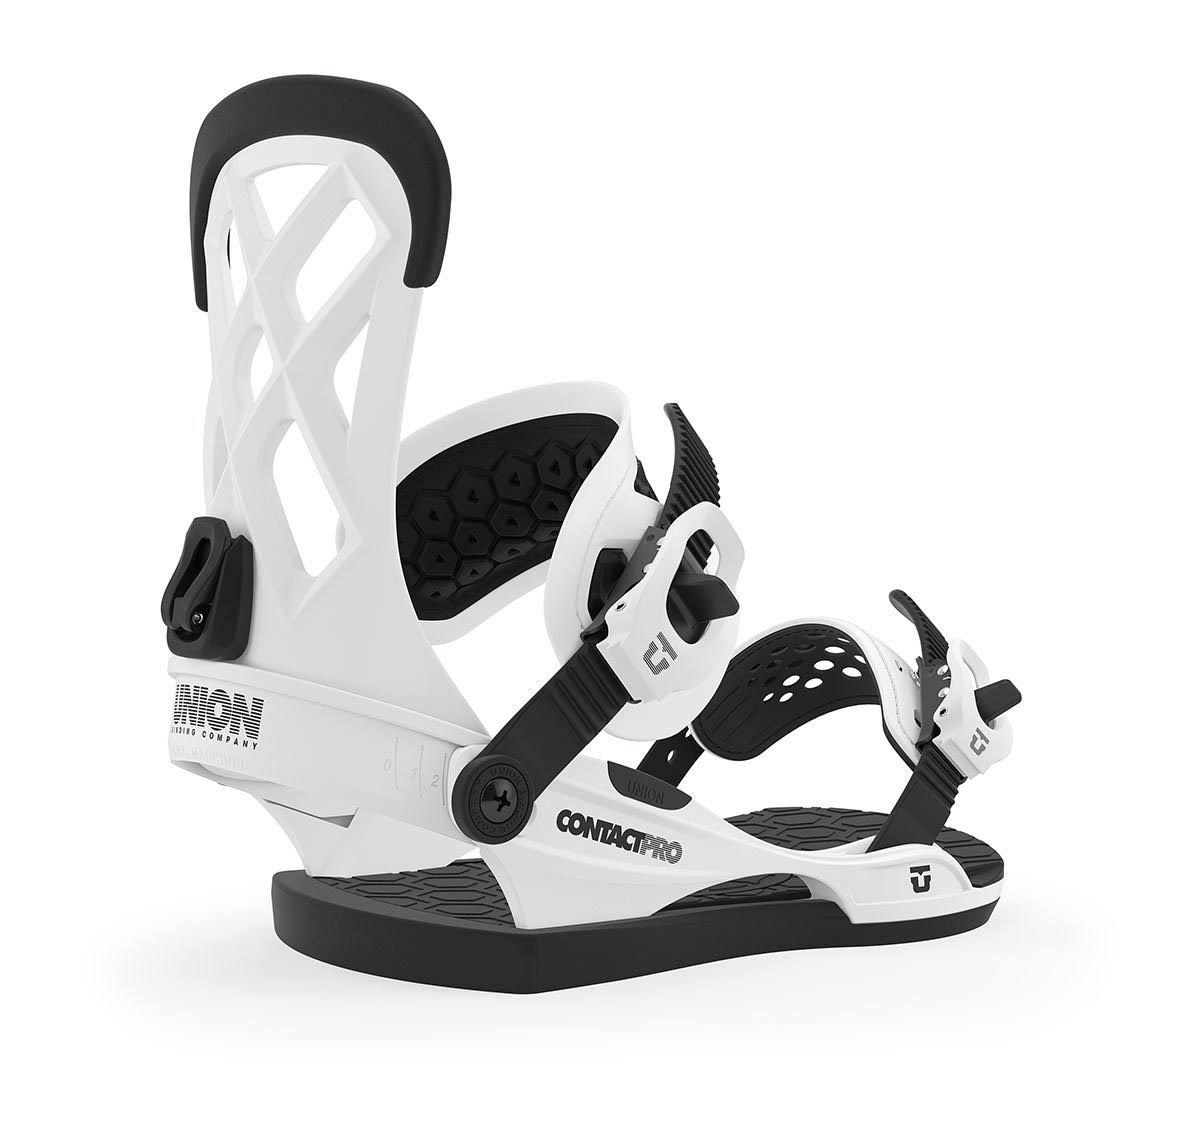 Union Contact Pro Snowboard Bindings - White